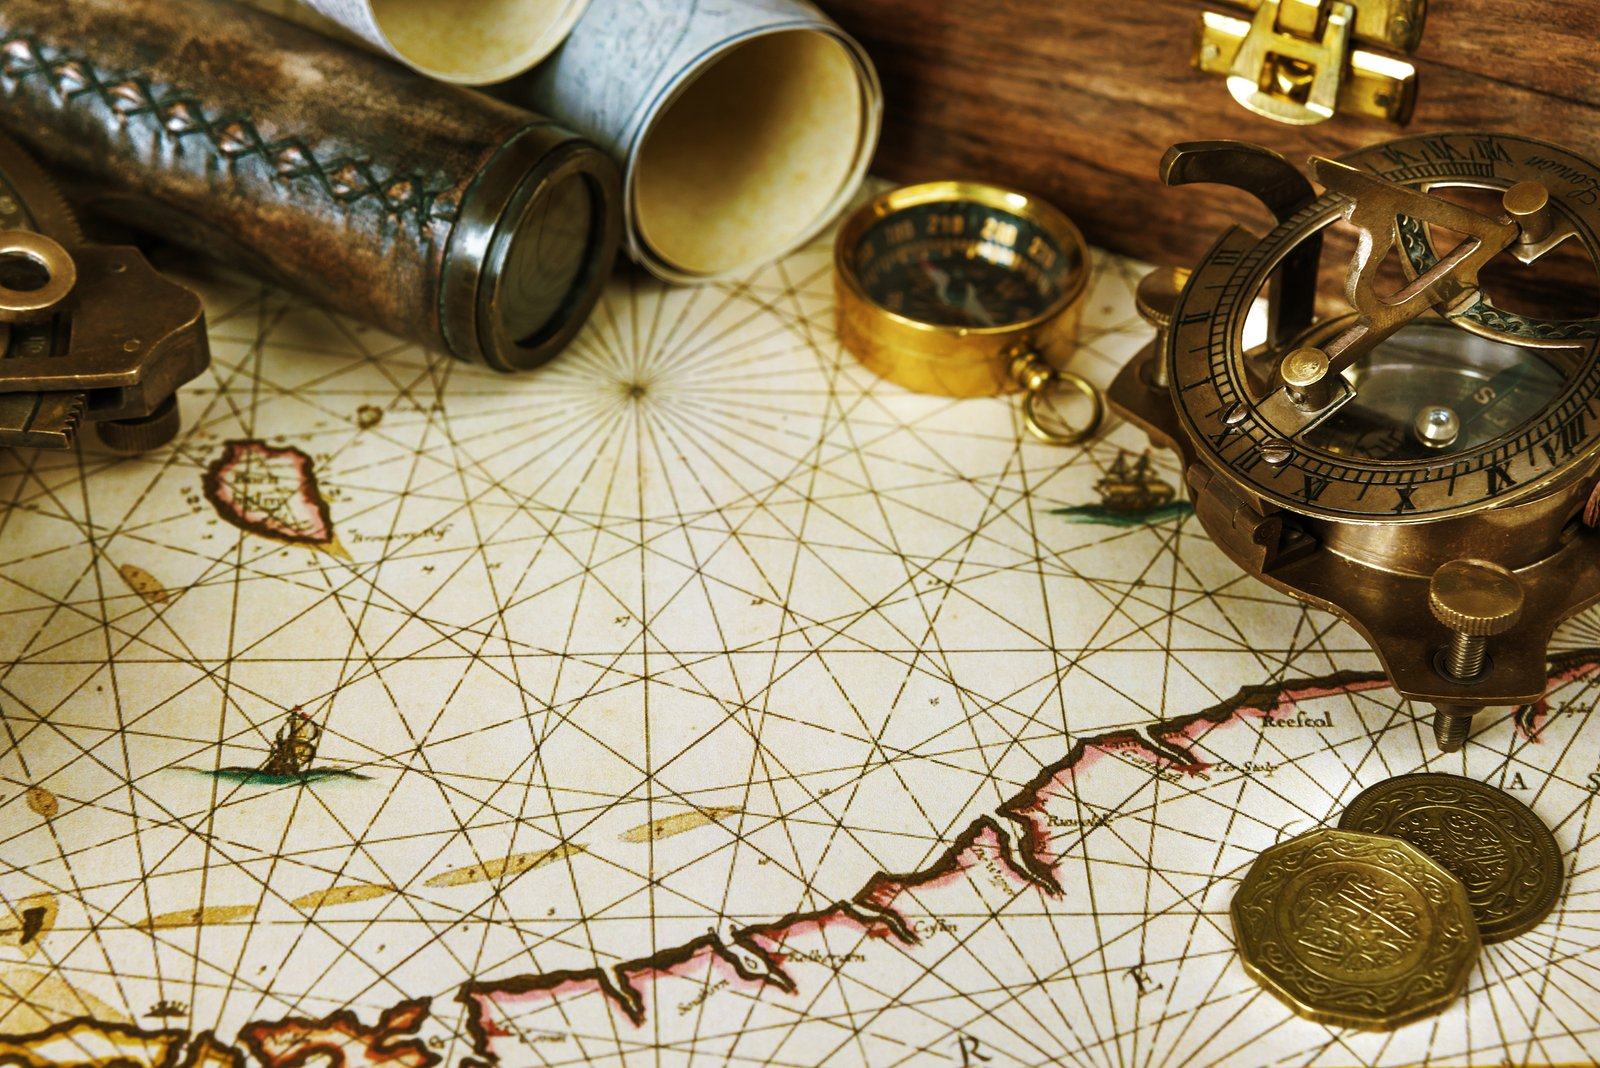 Mariners relied heavily on clocks and angle-measuring instruments like the quadrant, the astrolabe, and later the sextant to plot their location on a trackless sea, aligning the stars in the sky to find their own place on Earth.